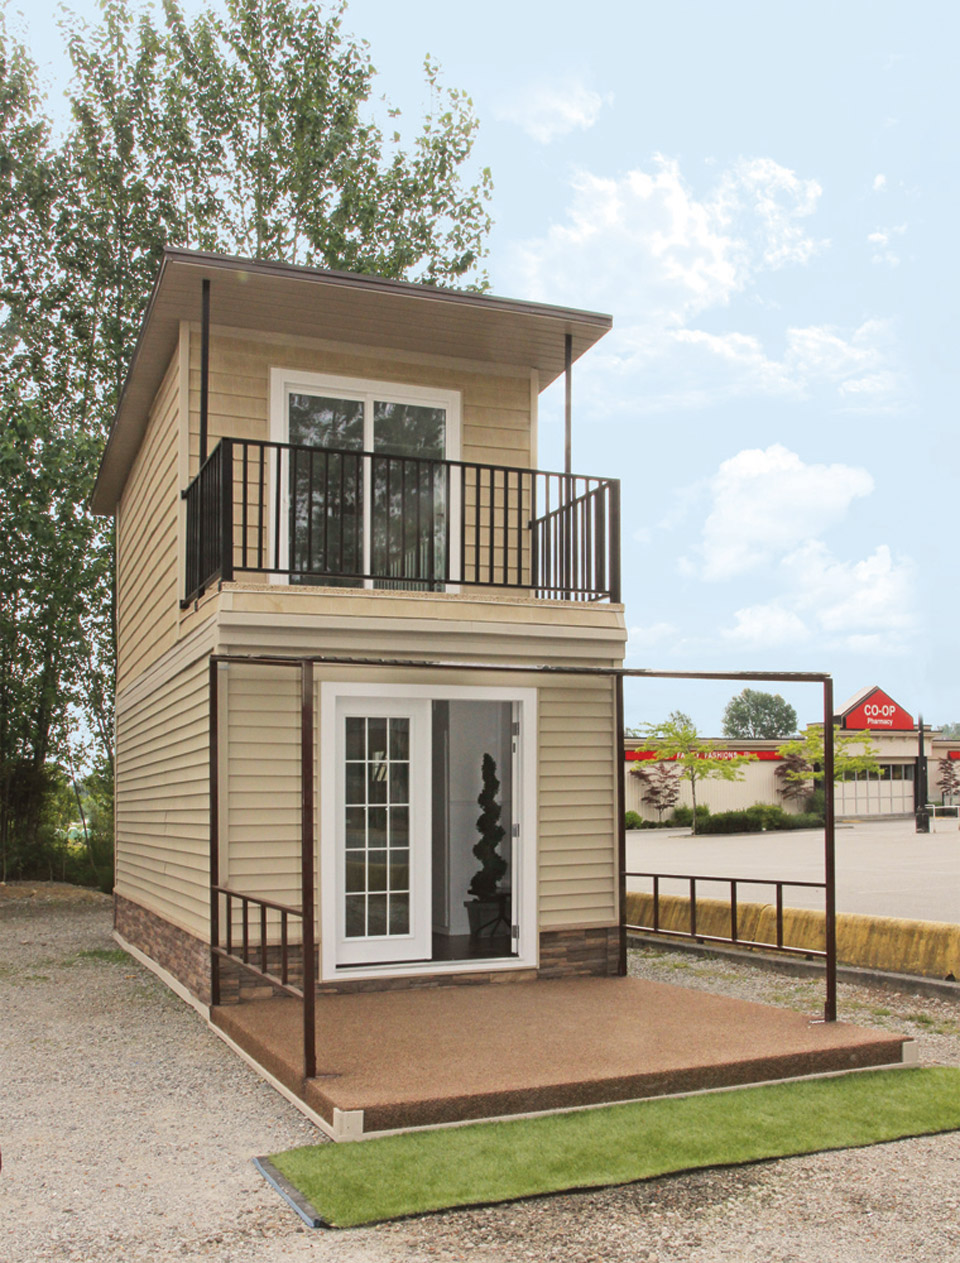 The eagle 1 a 350 sq ft 2 story steel framed micro home for Small two story house plans with garage